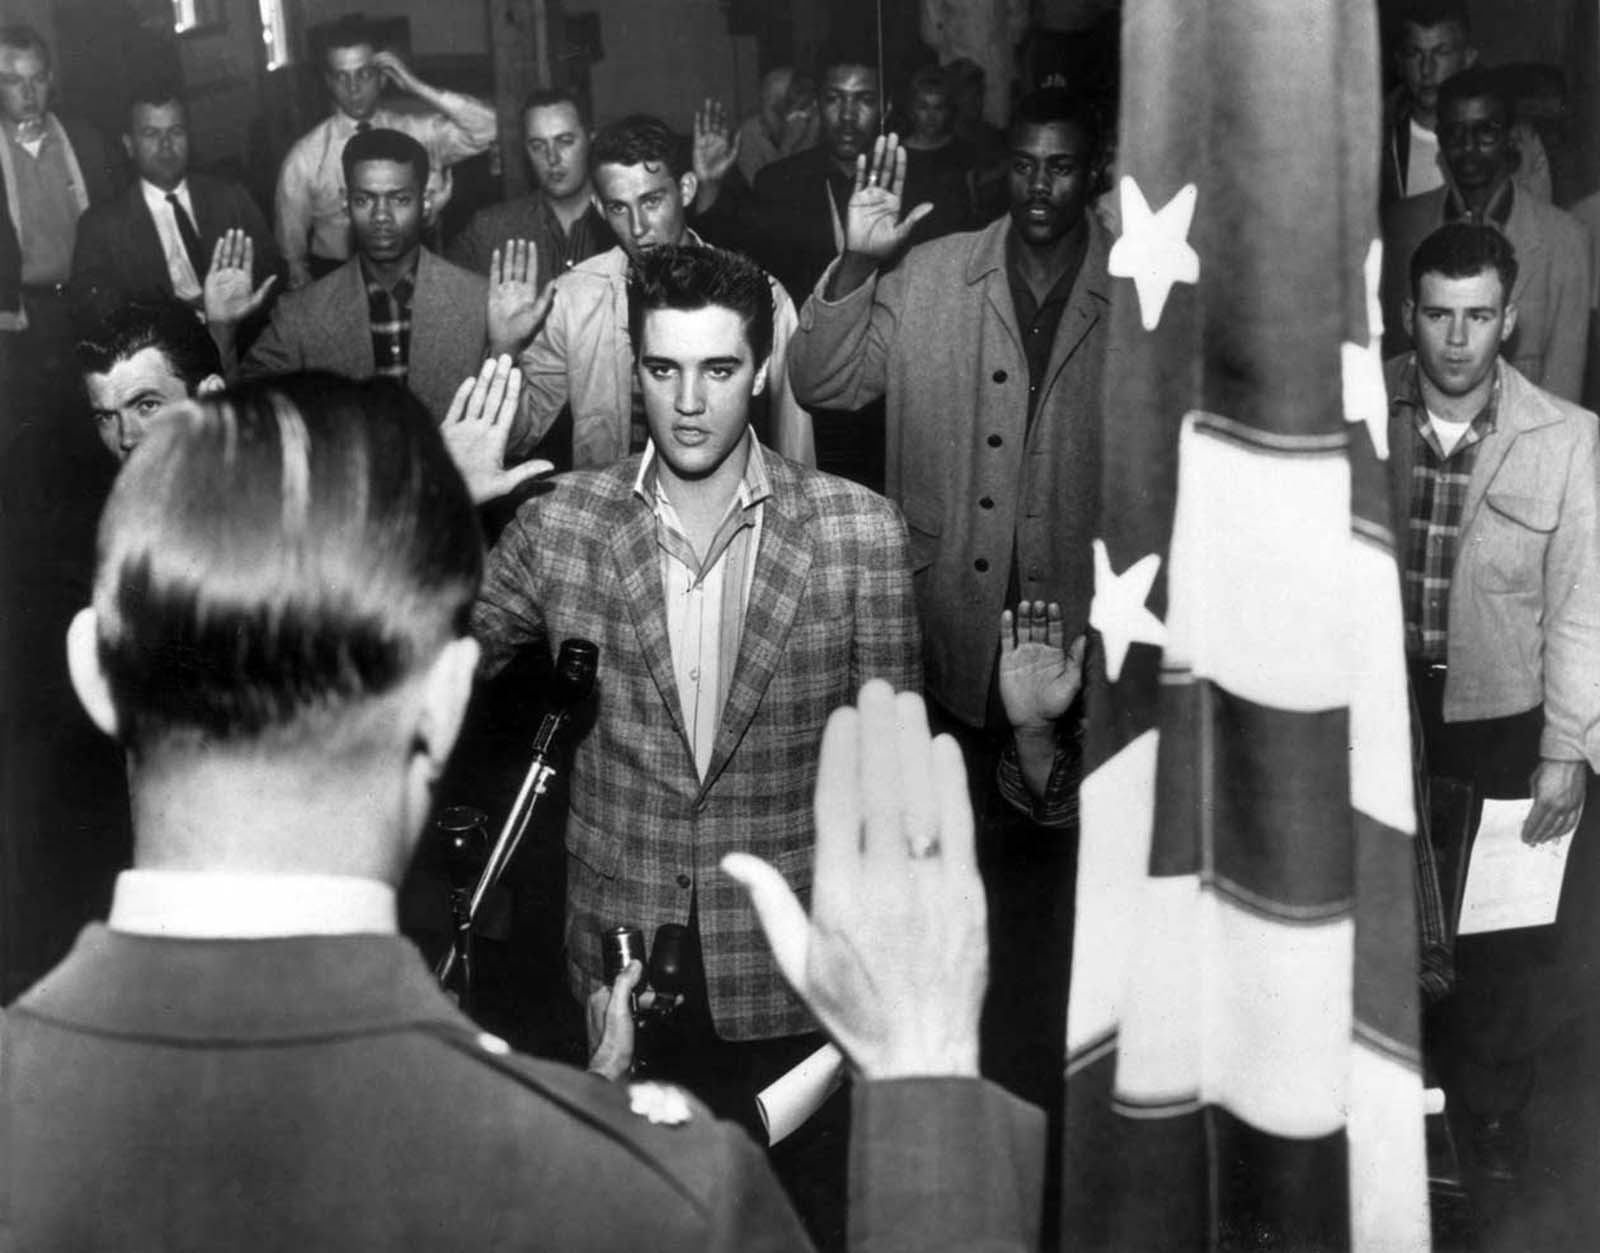 Elvis Presley stands with a group of young men at an induction center, raising their right hands as they are sworn into the United States Army by an officer standing next to an American flag.